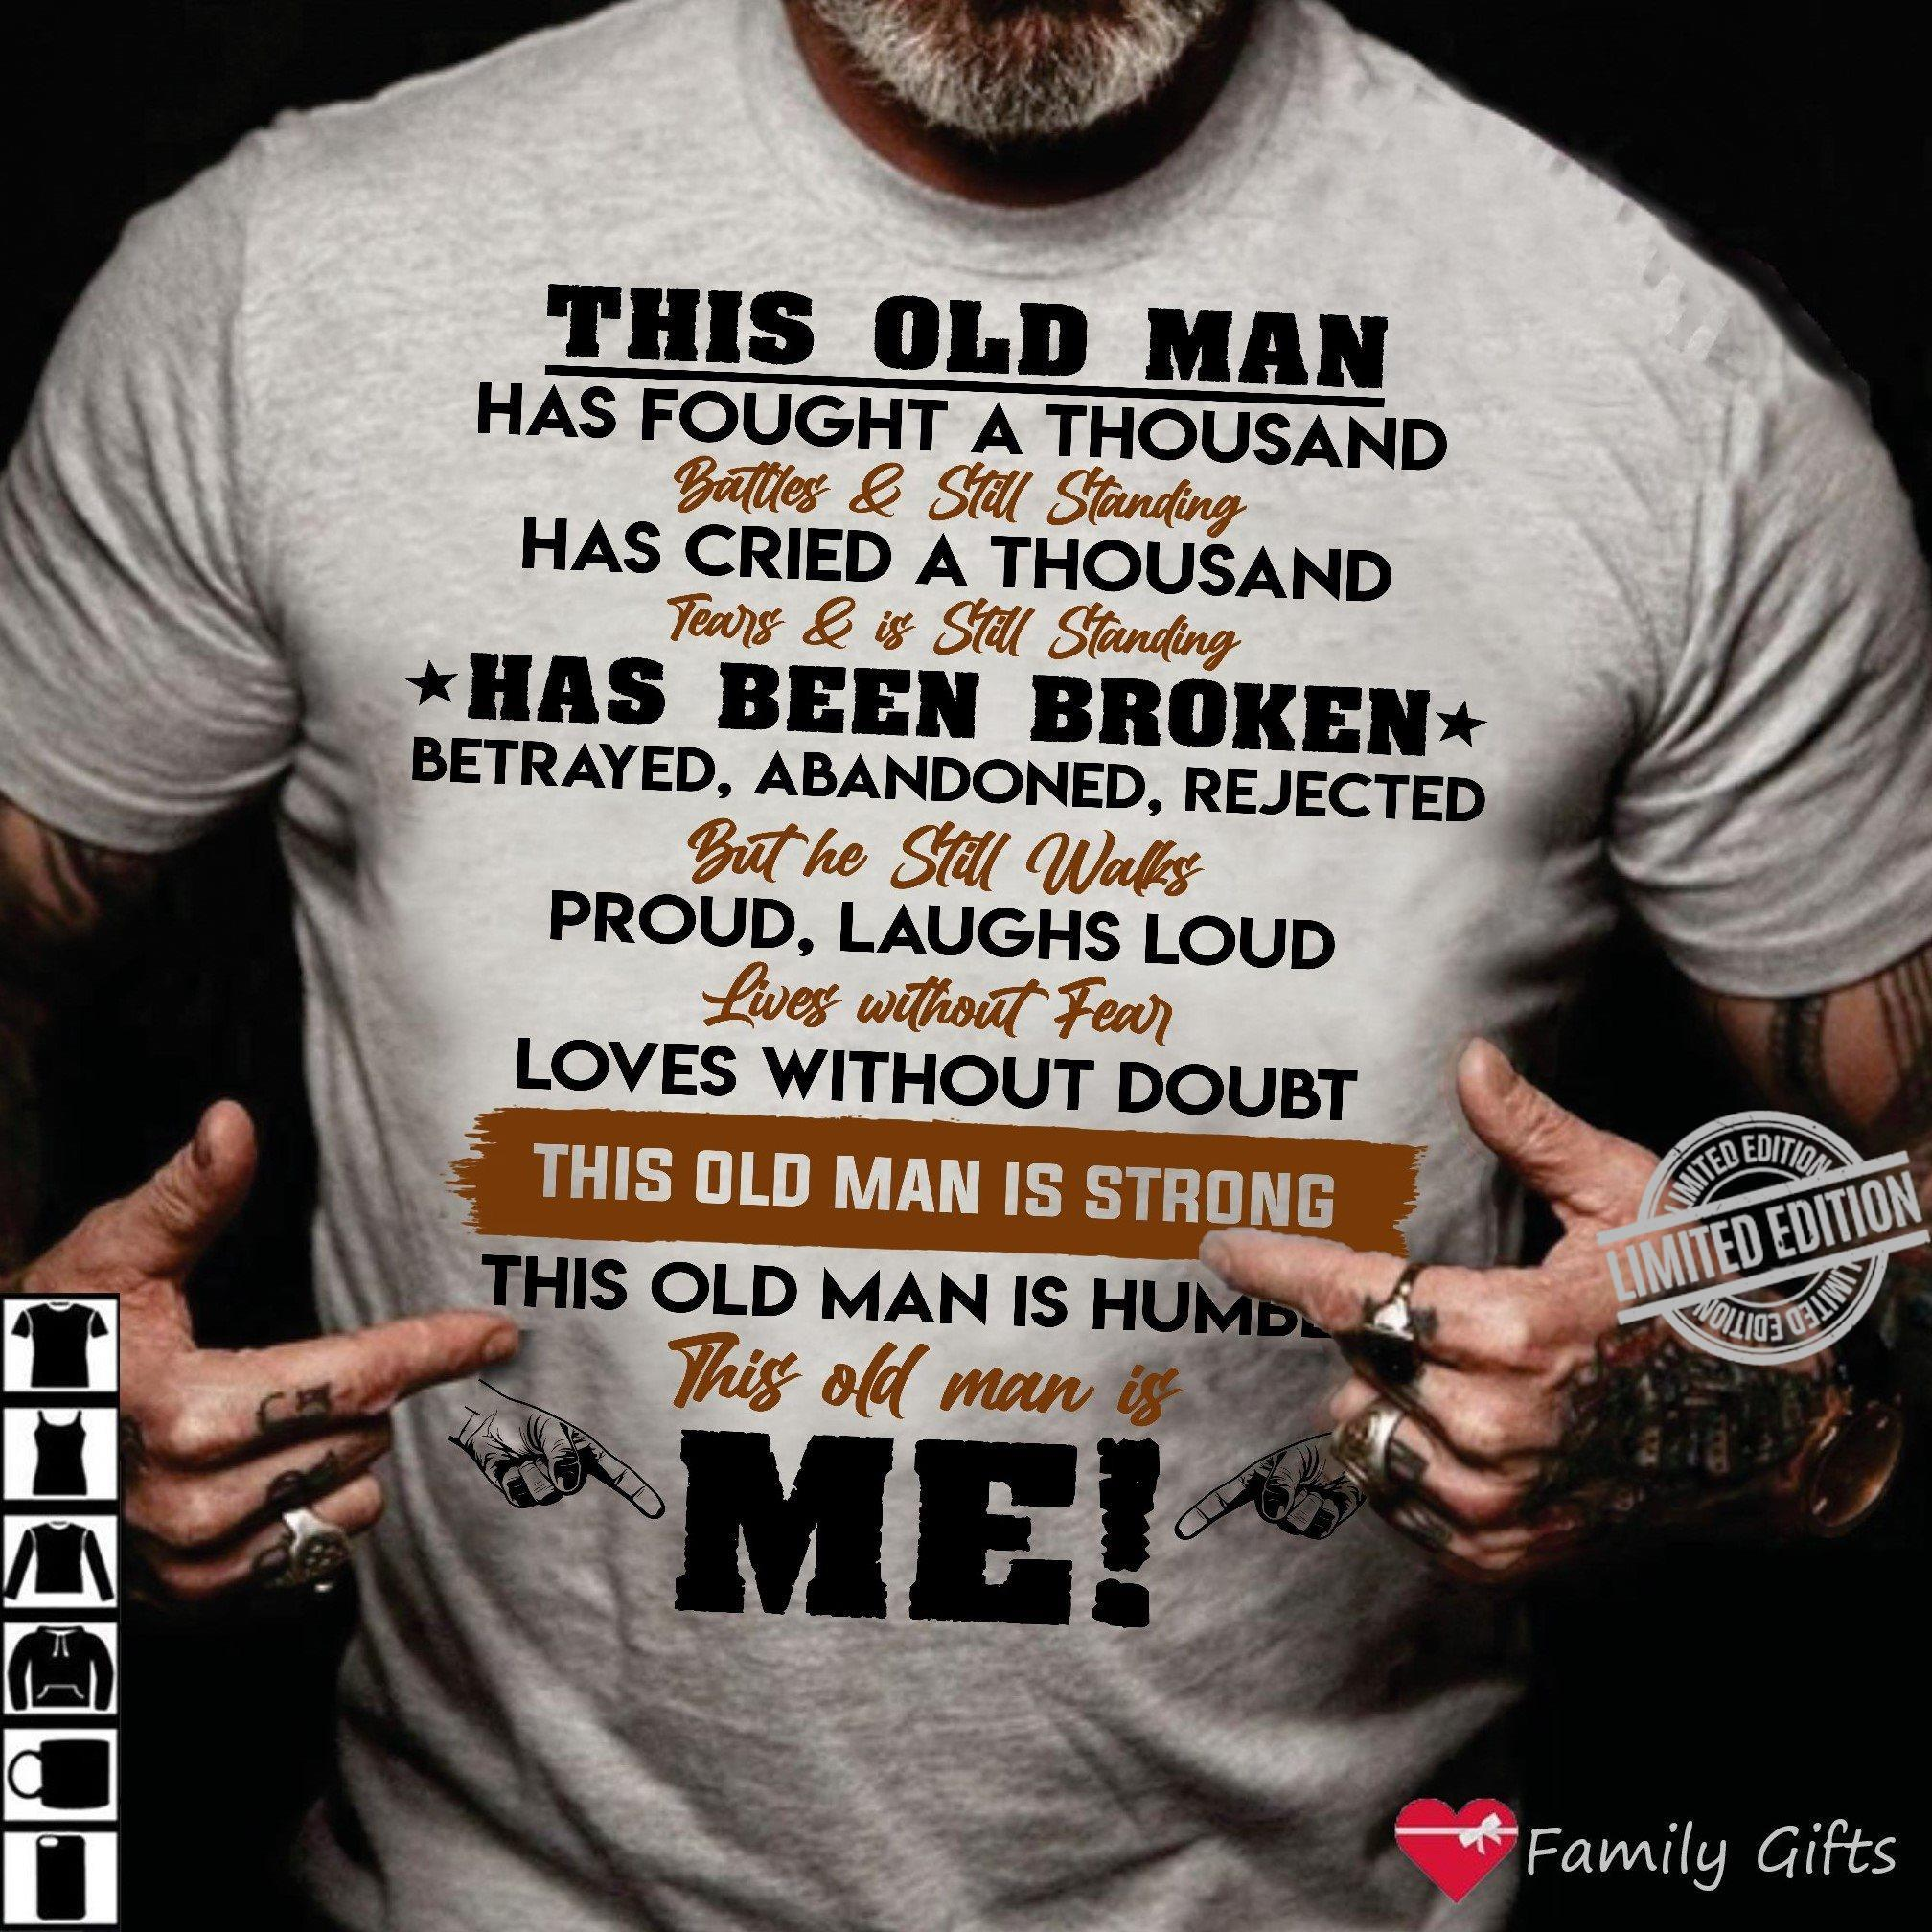 This Old Man Has Fought A Thousand Has Cried A Thousand Has Been Broken Loves Without Doubt This Old Man Is Men Shirt